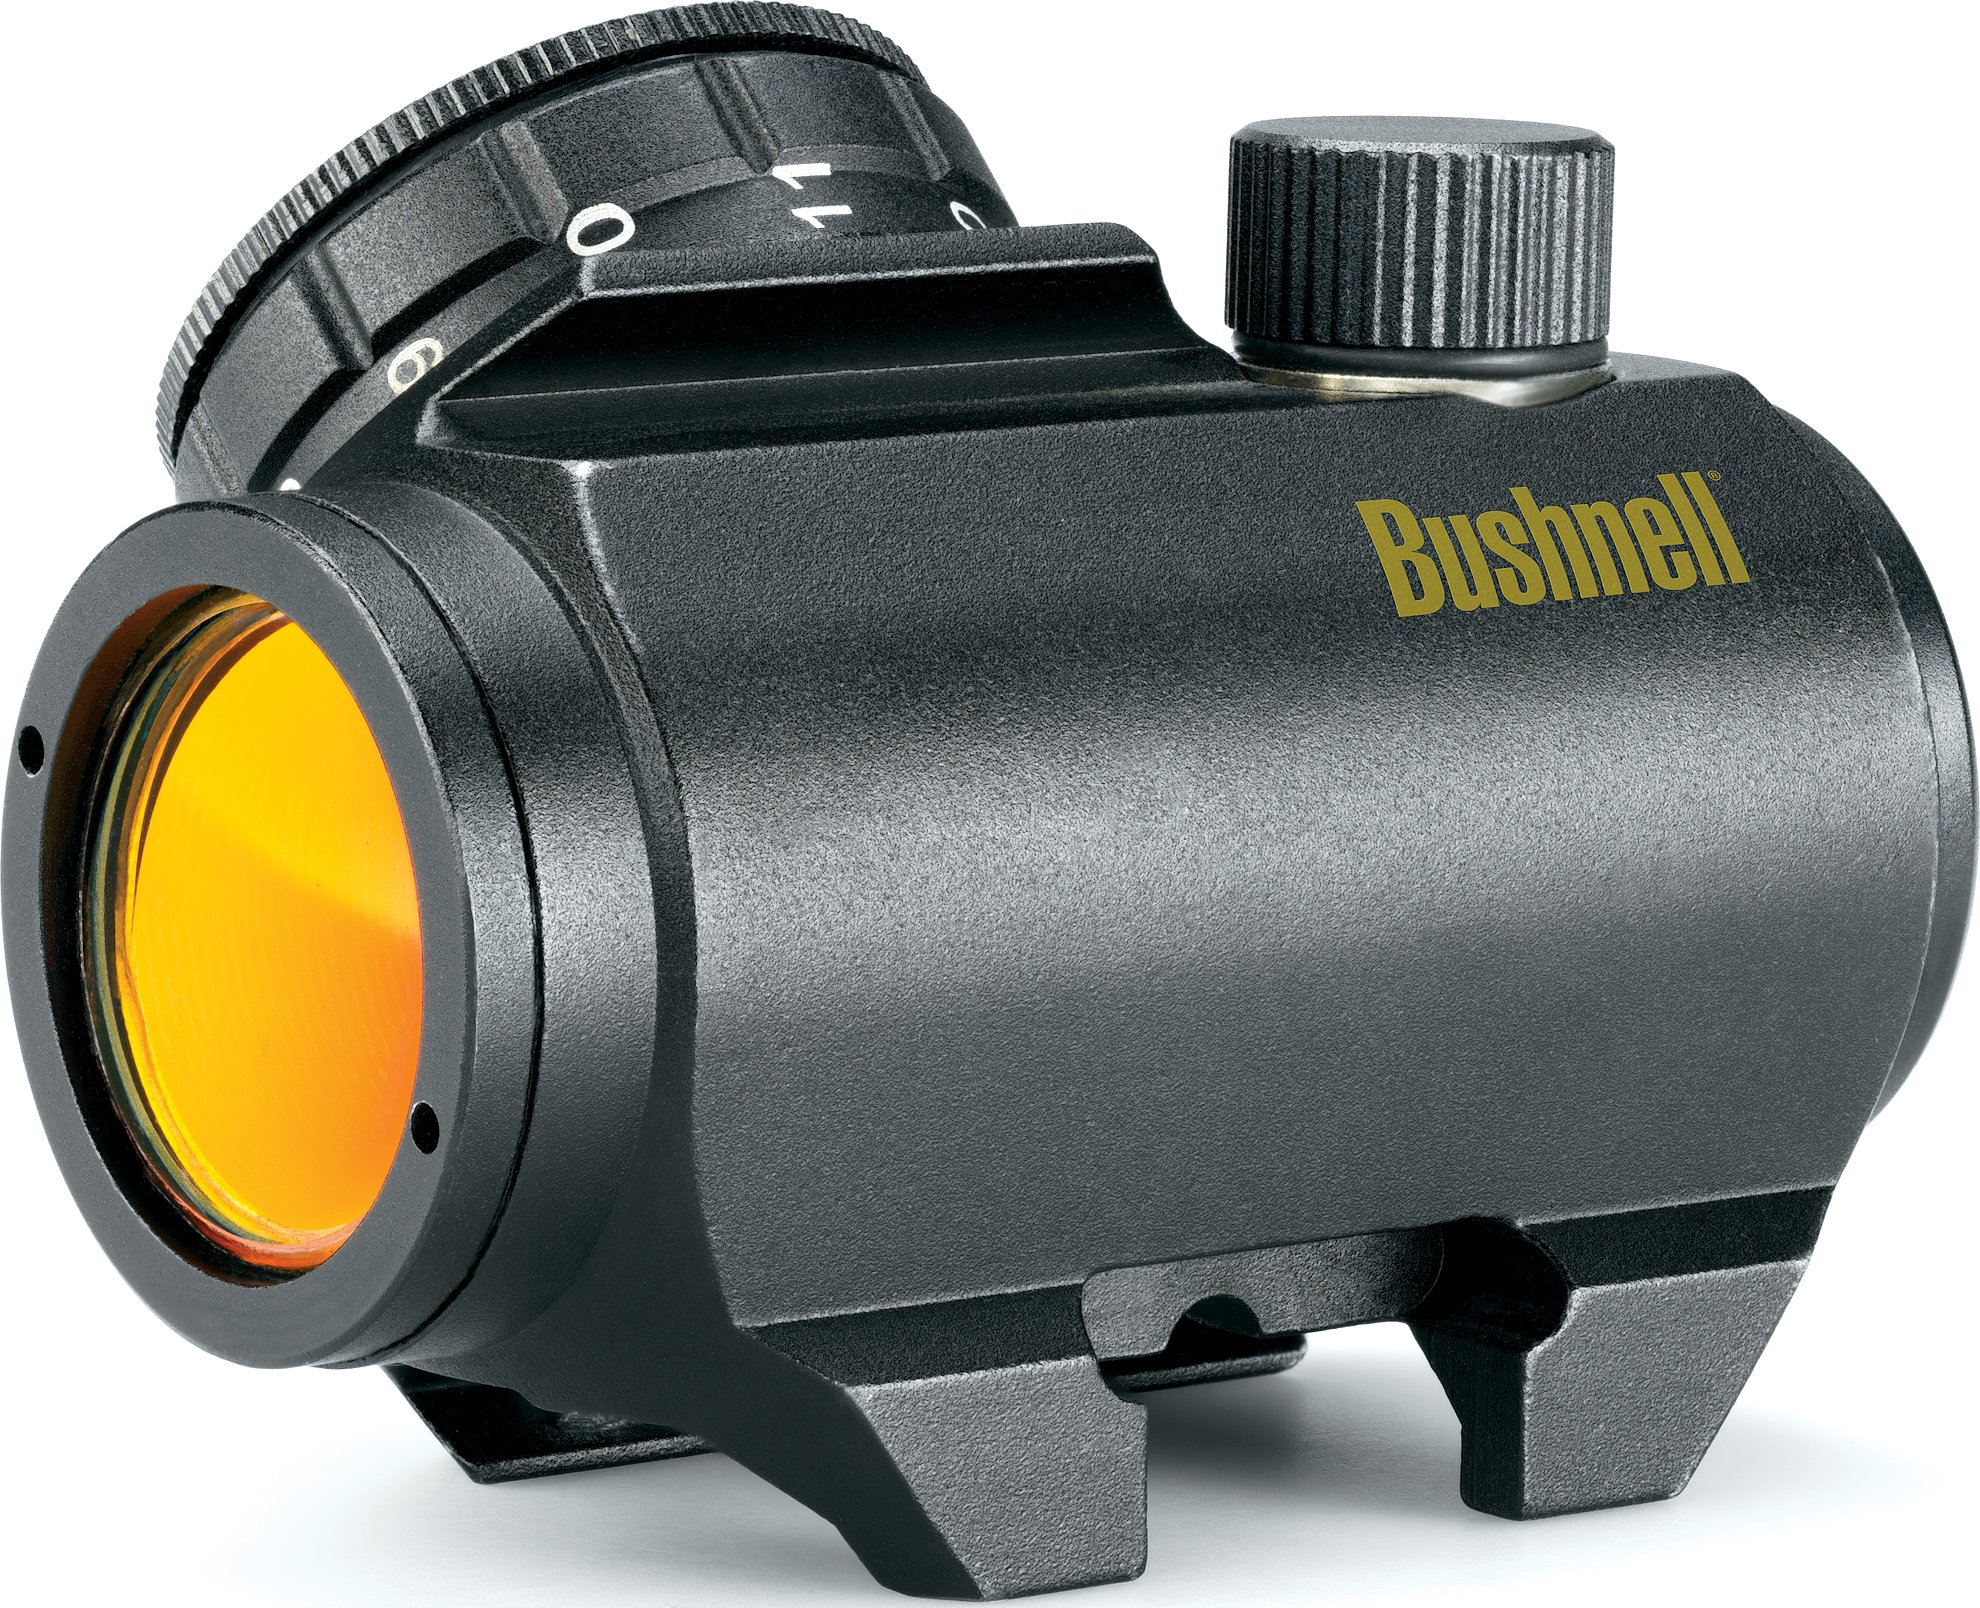 Bushnell Trophy TRS-25 Red Dot Sight Riflescope, 1x25mm, Black by Bushnell